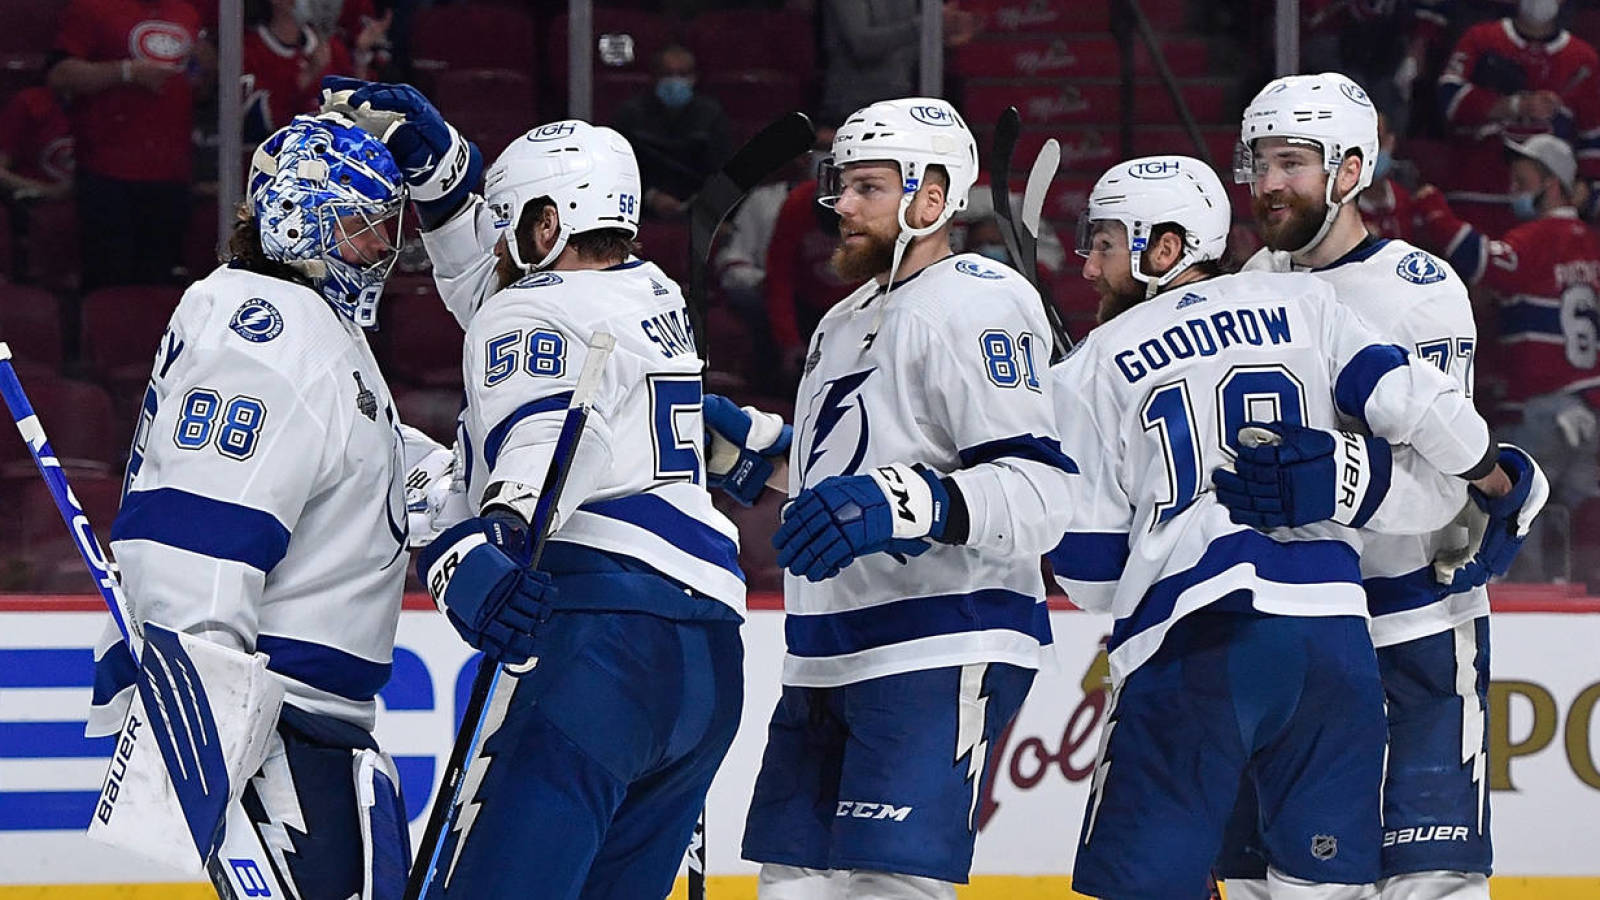 Lightning players' families denied entry to Canada